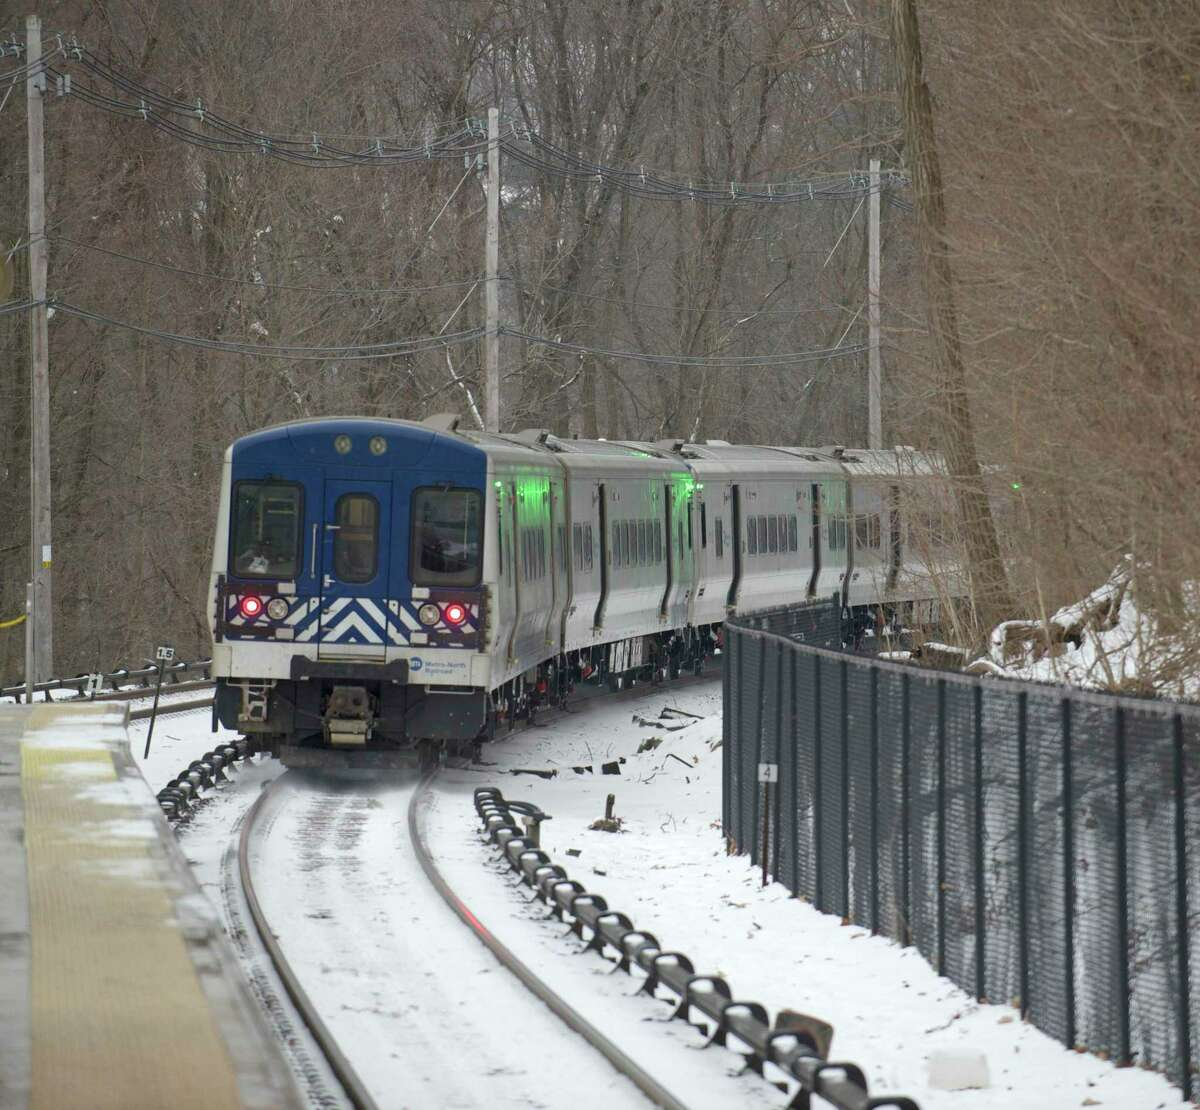 A train leaves the Brewster, NY, station on the Metro-North Harlem Line going to New York City on Monday, January 27, 2014.